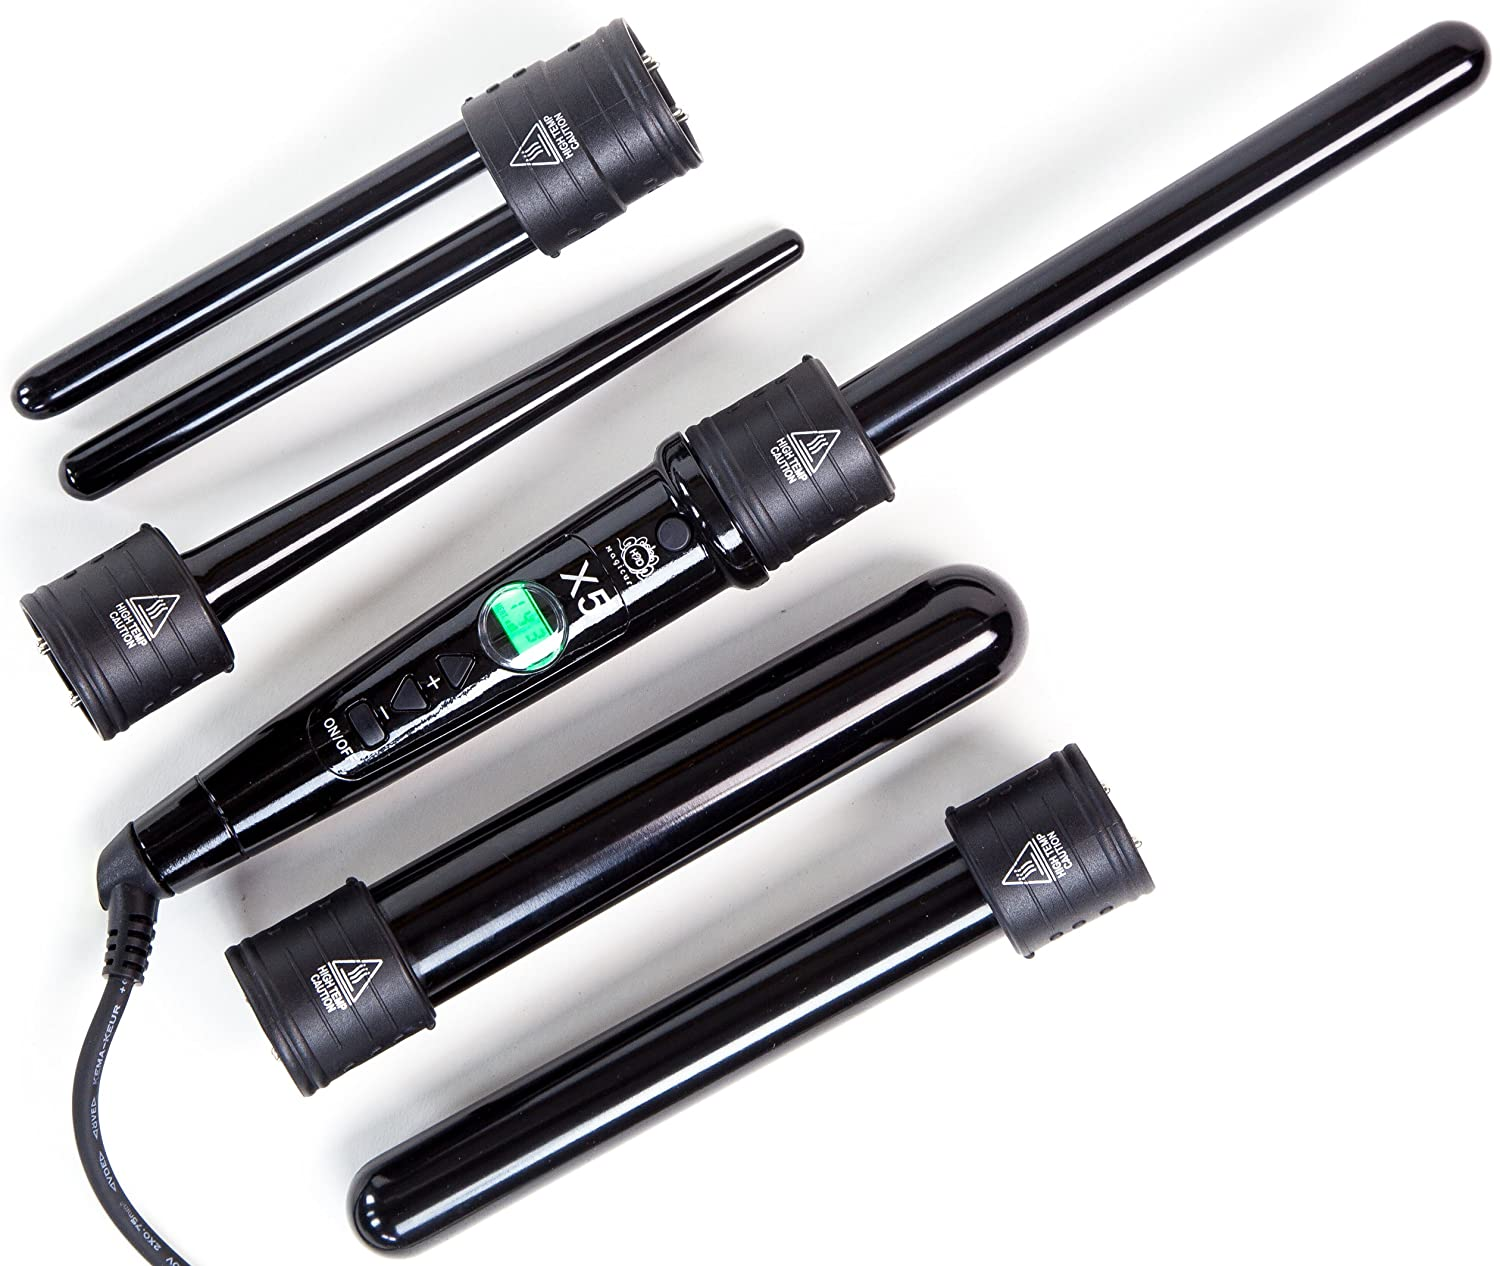 H2D X5 5-in-1 Magicurl Five Piece Curling Wand